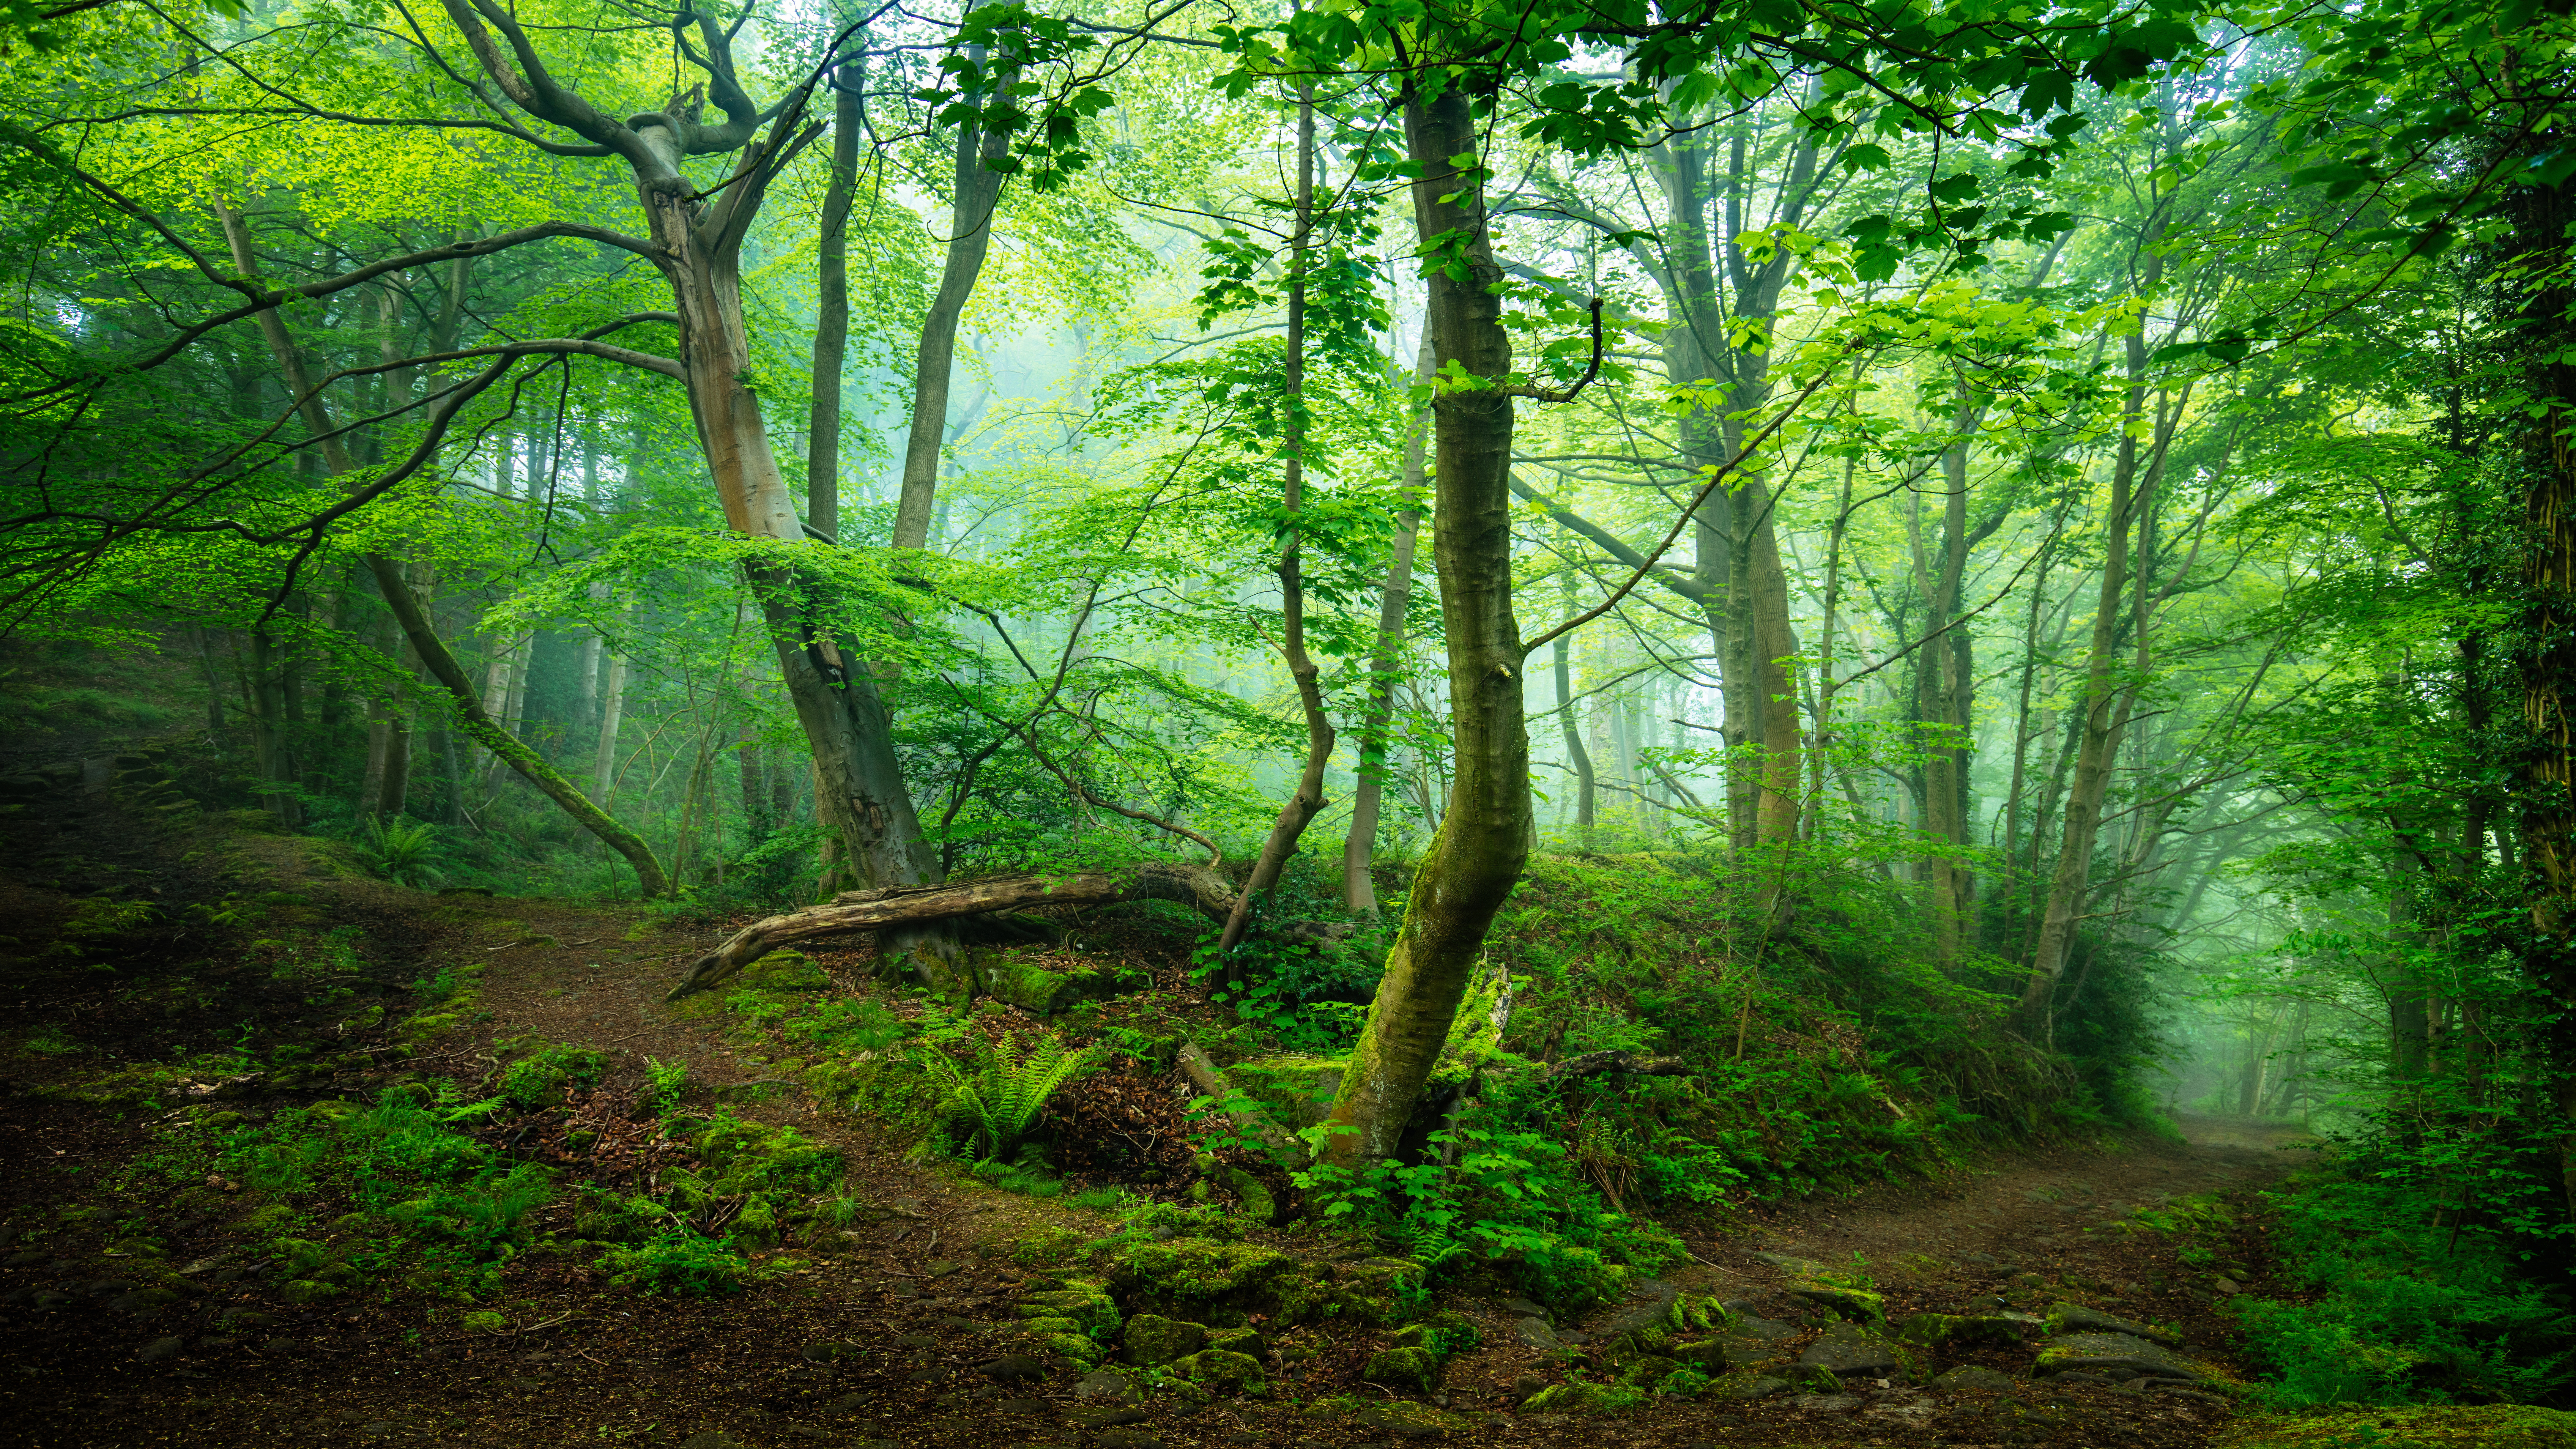 195 4k Ultra Hd Forest Wallpapers Background Images Wallpaper Abyss